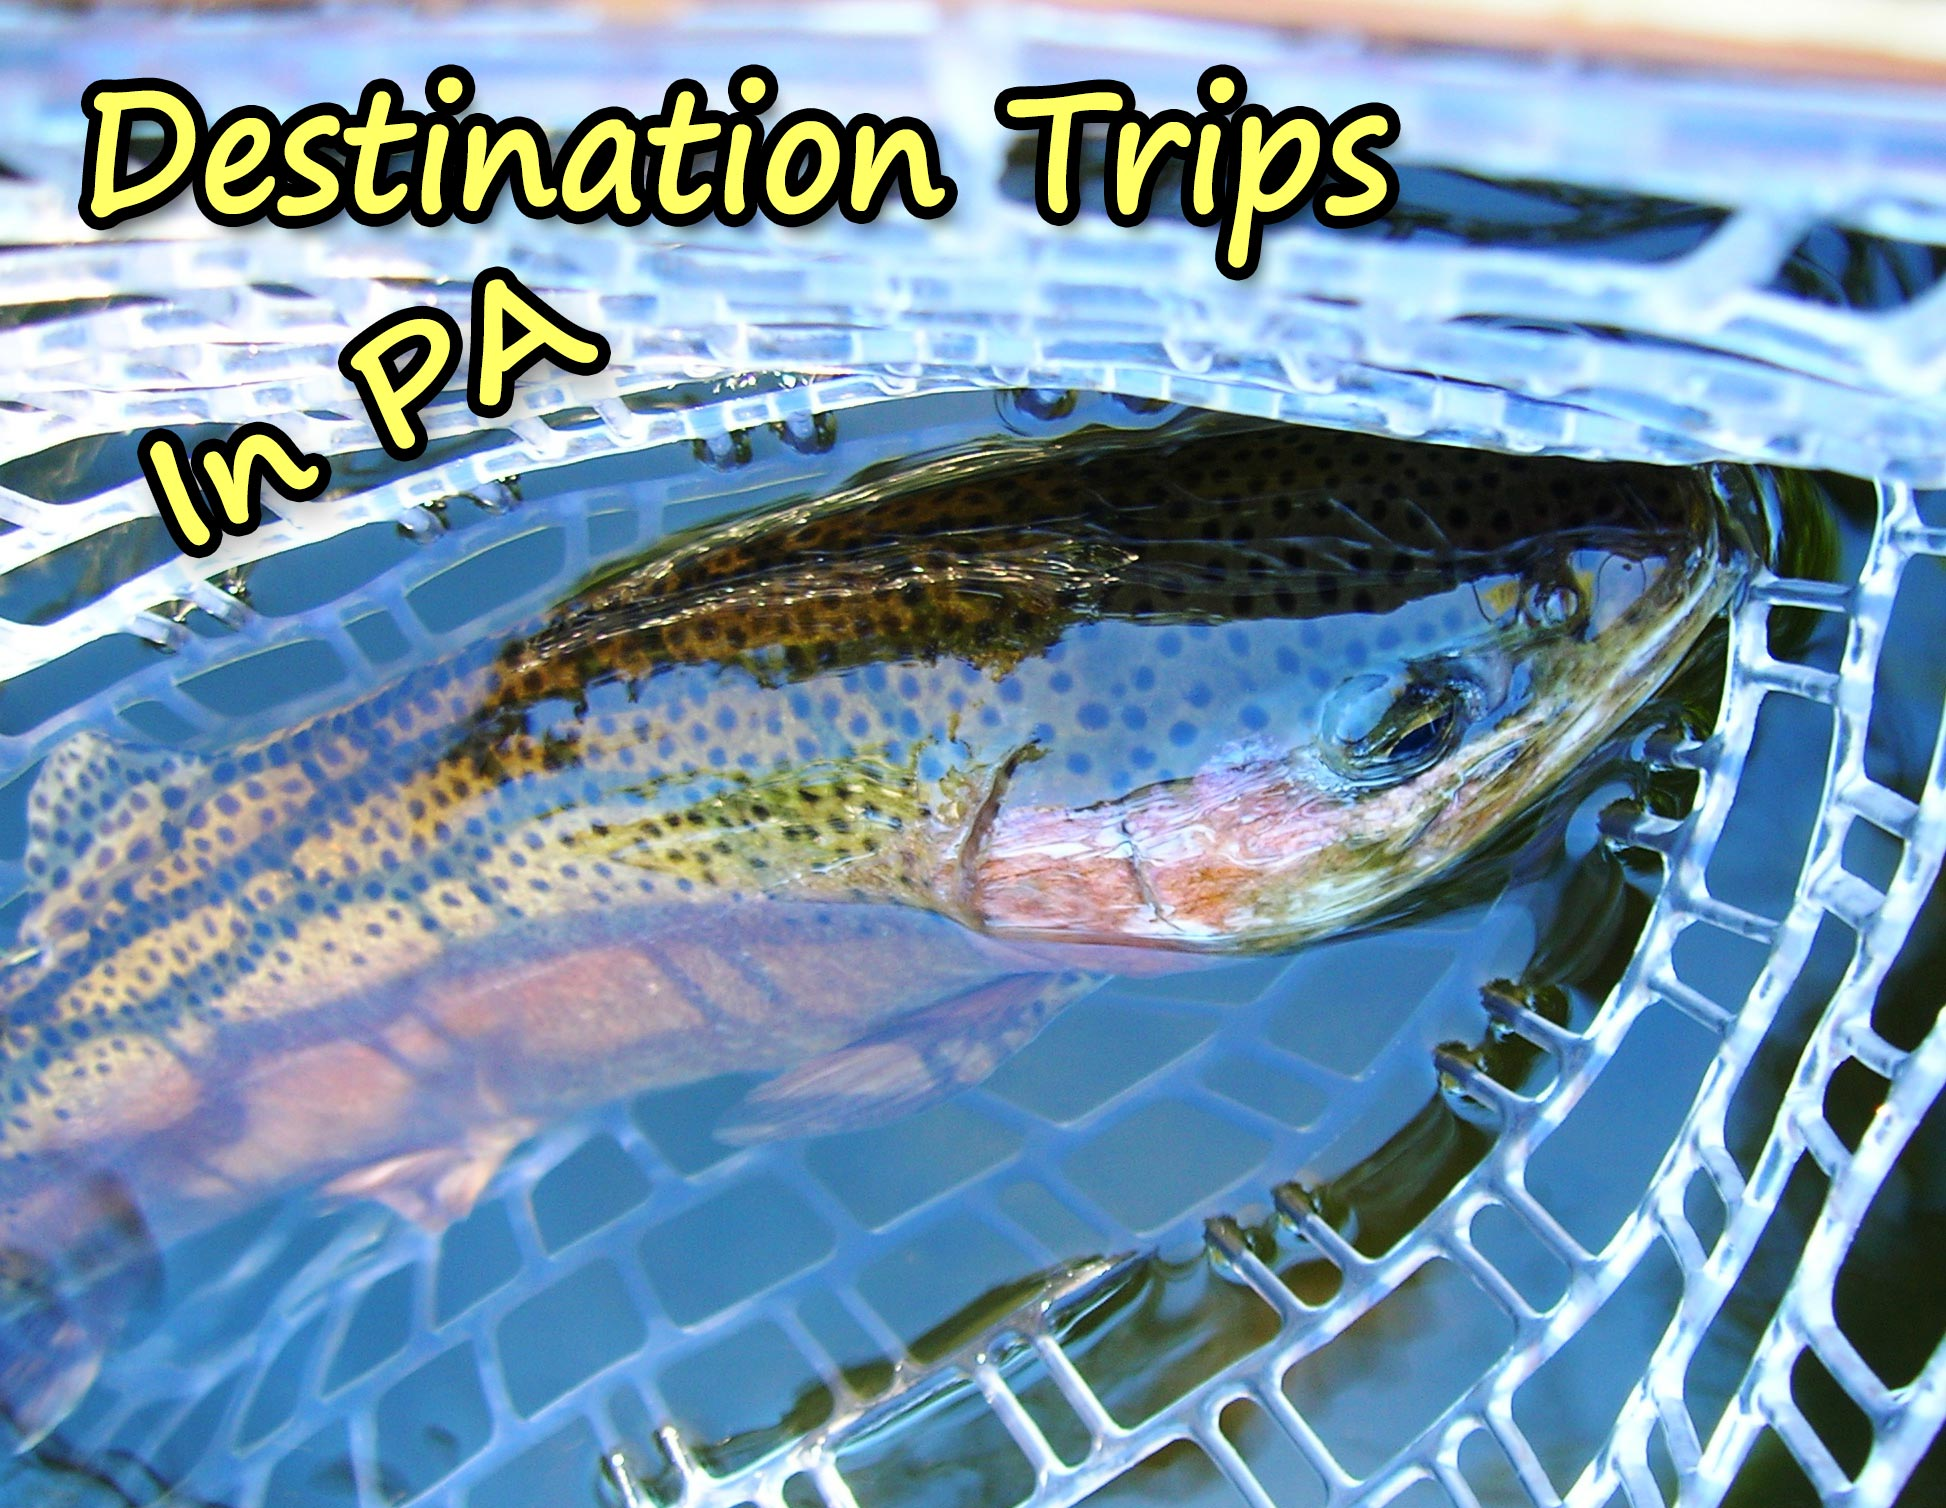 Enjoy One Of Our All Inclusive  (Food, Lodging and Guiding) Trips In Central Pennsylvania, Penns Creek, Spring Creek, Little Juniata And Local Brook Trout Streams